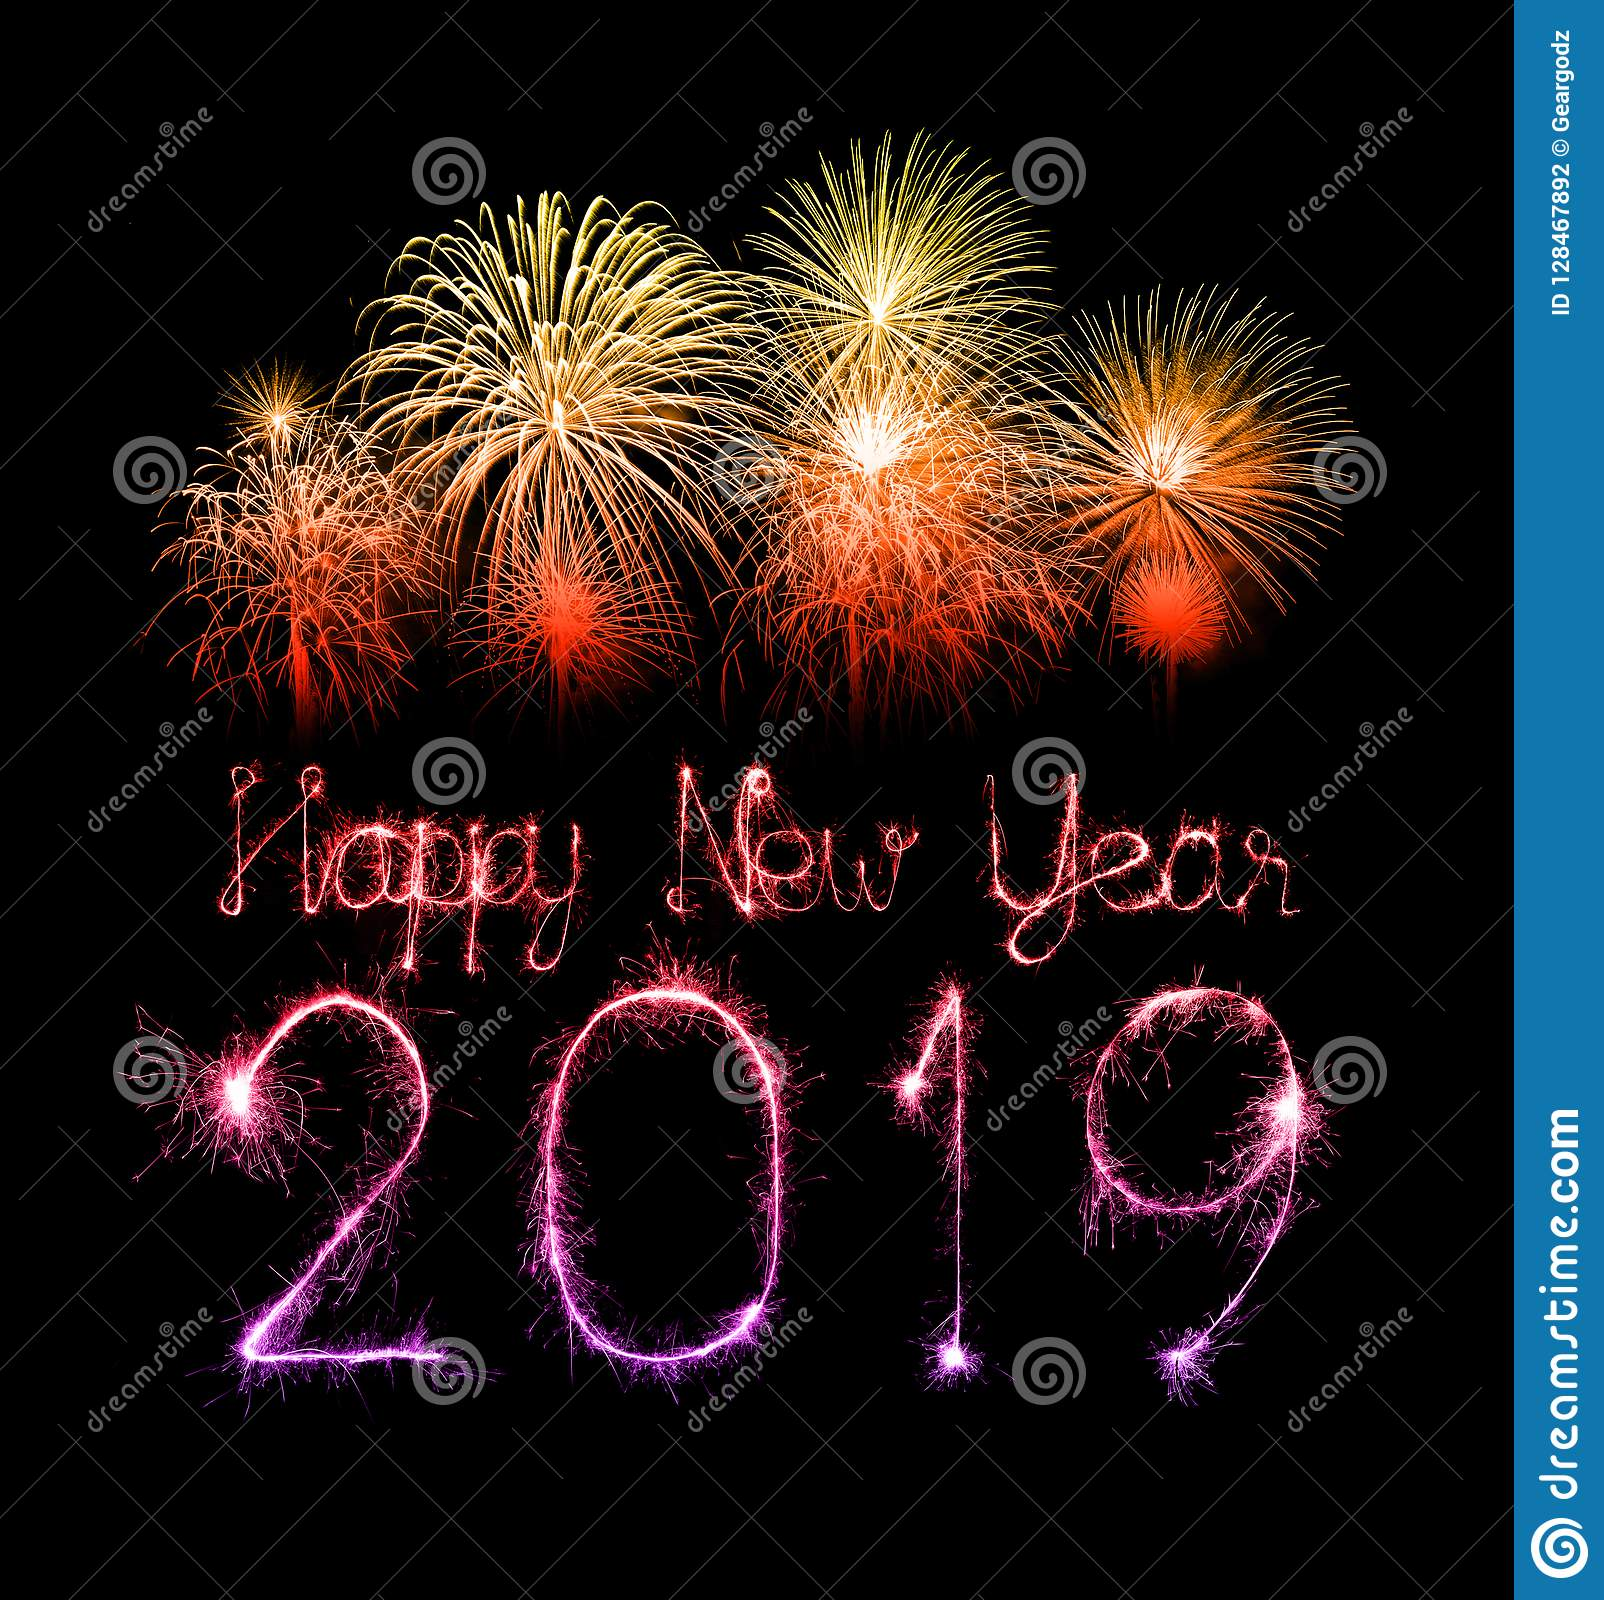 Happy New Year Diwali 2019 Images 58